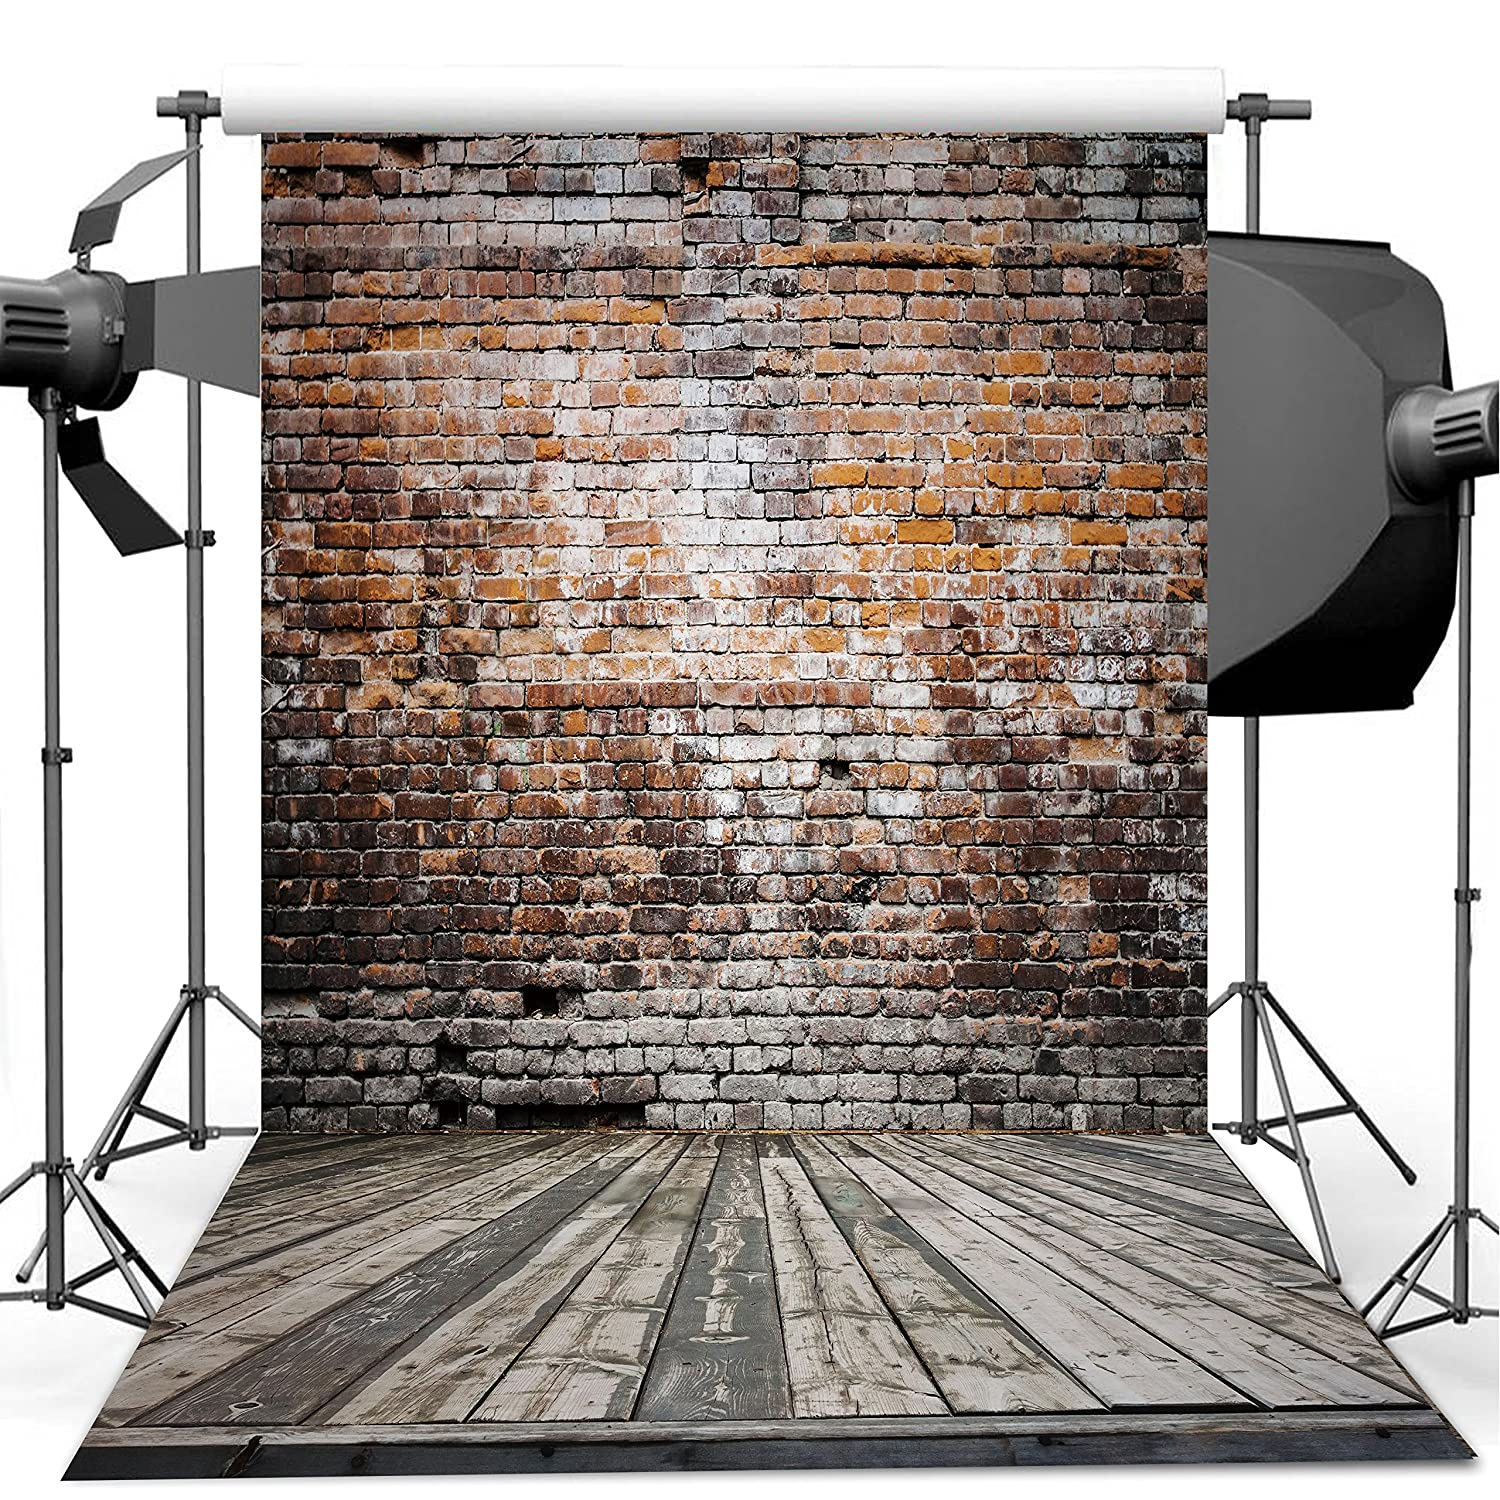 Consumer Electronics Just Vinyl Fabric Halloween Photography Backdrops Off-white Wall Photographic Backgrounds For Kids Photography Studio Photo Shooting Grade Products According To Quality Camera & Photo